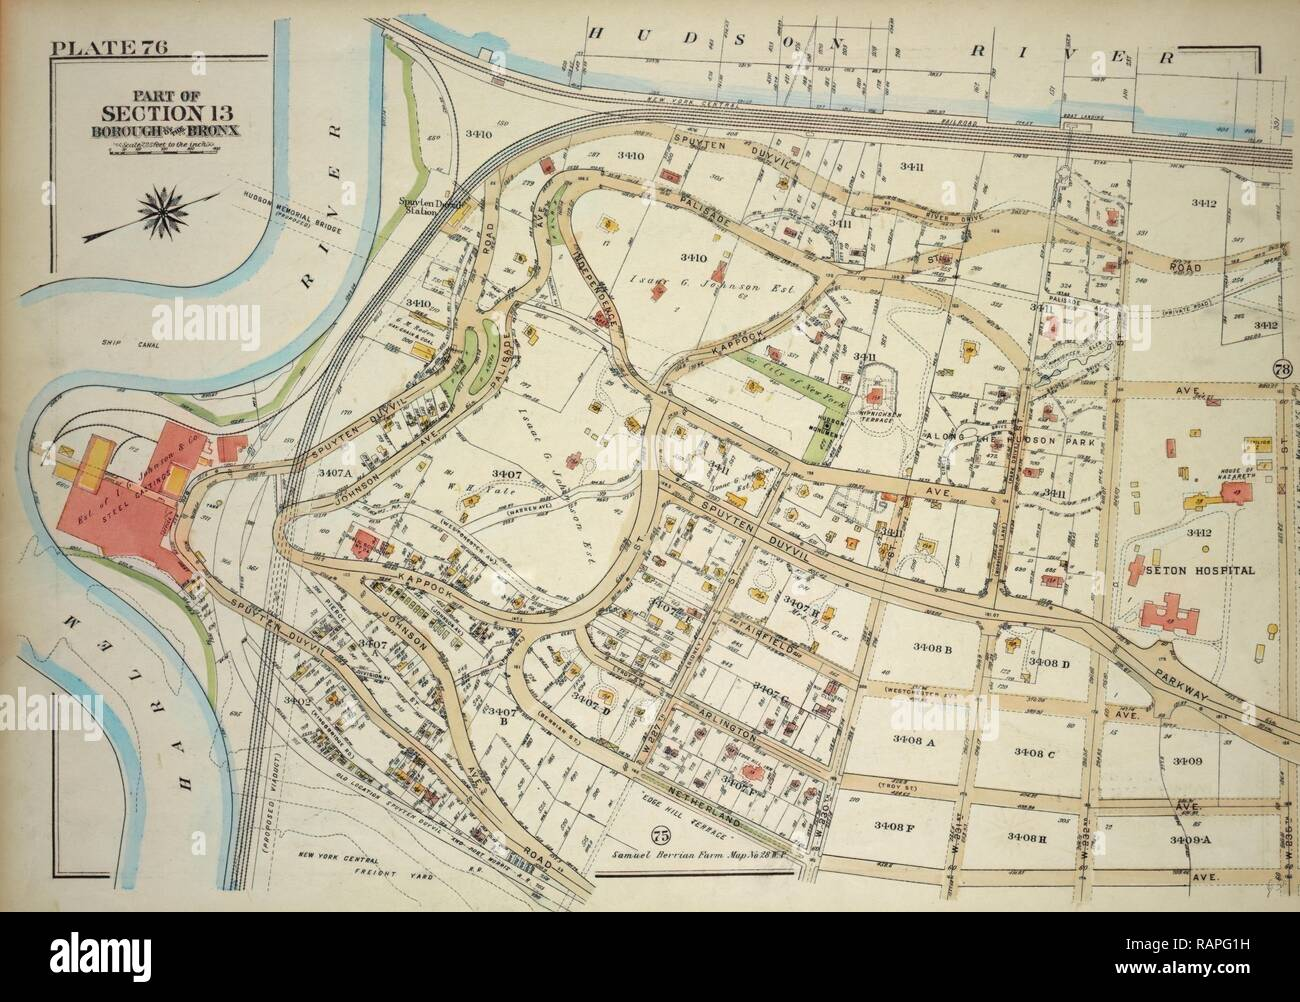 Plate 76, Part of Section 13, Borough of the Bronx. Bounded by Spuyten Duyvil Road, W. 235th Street, Netherland reimagined - Stock Image